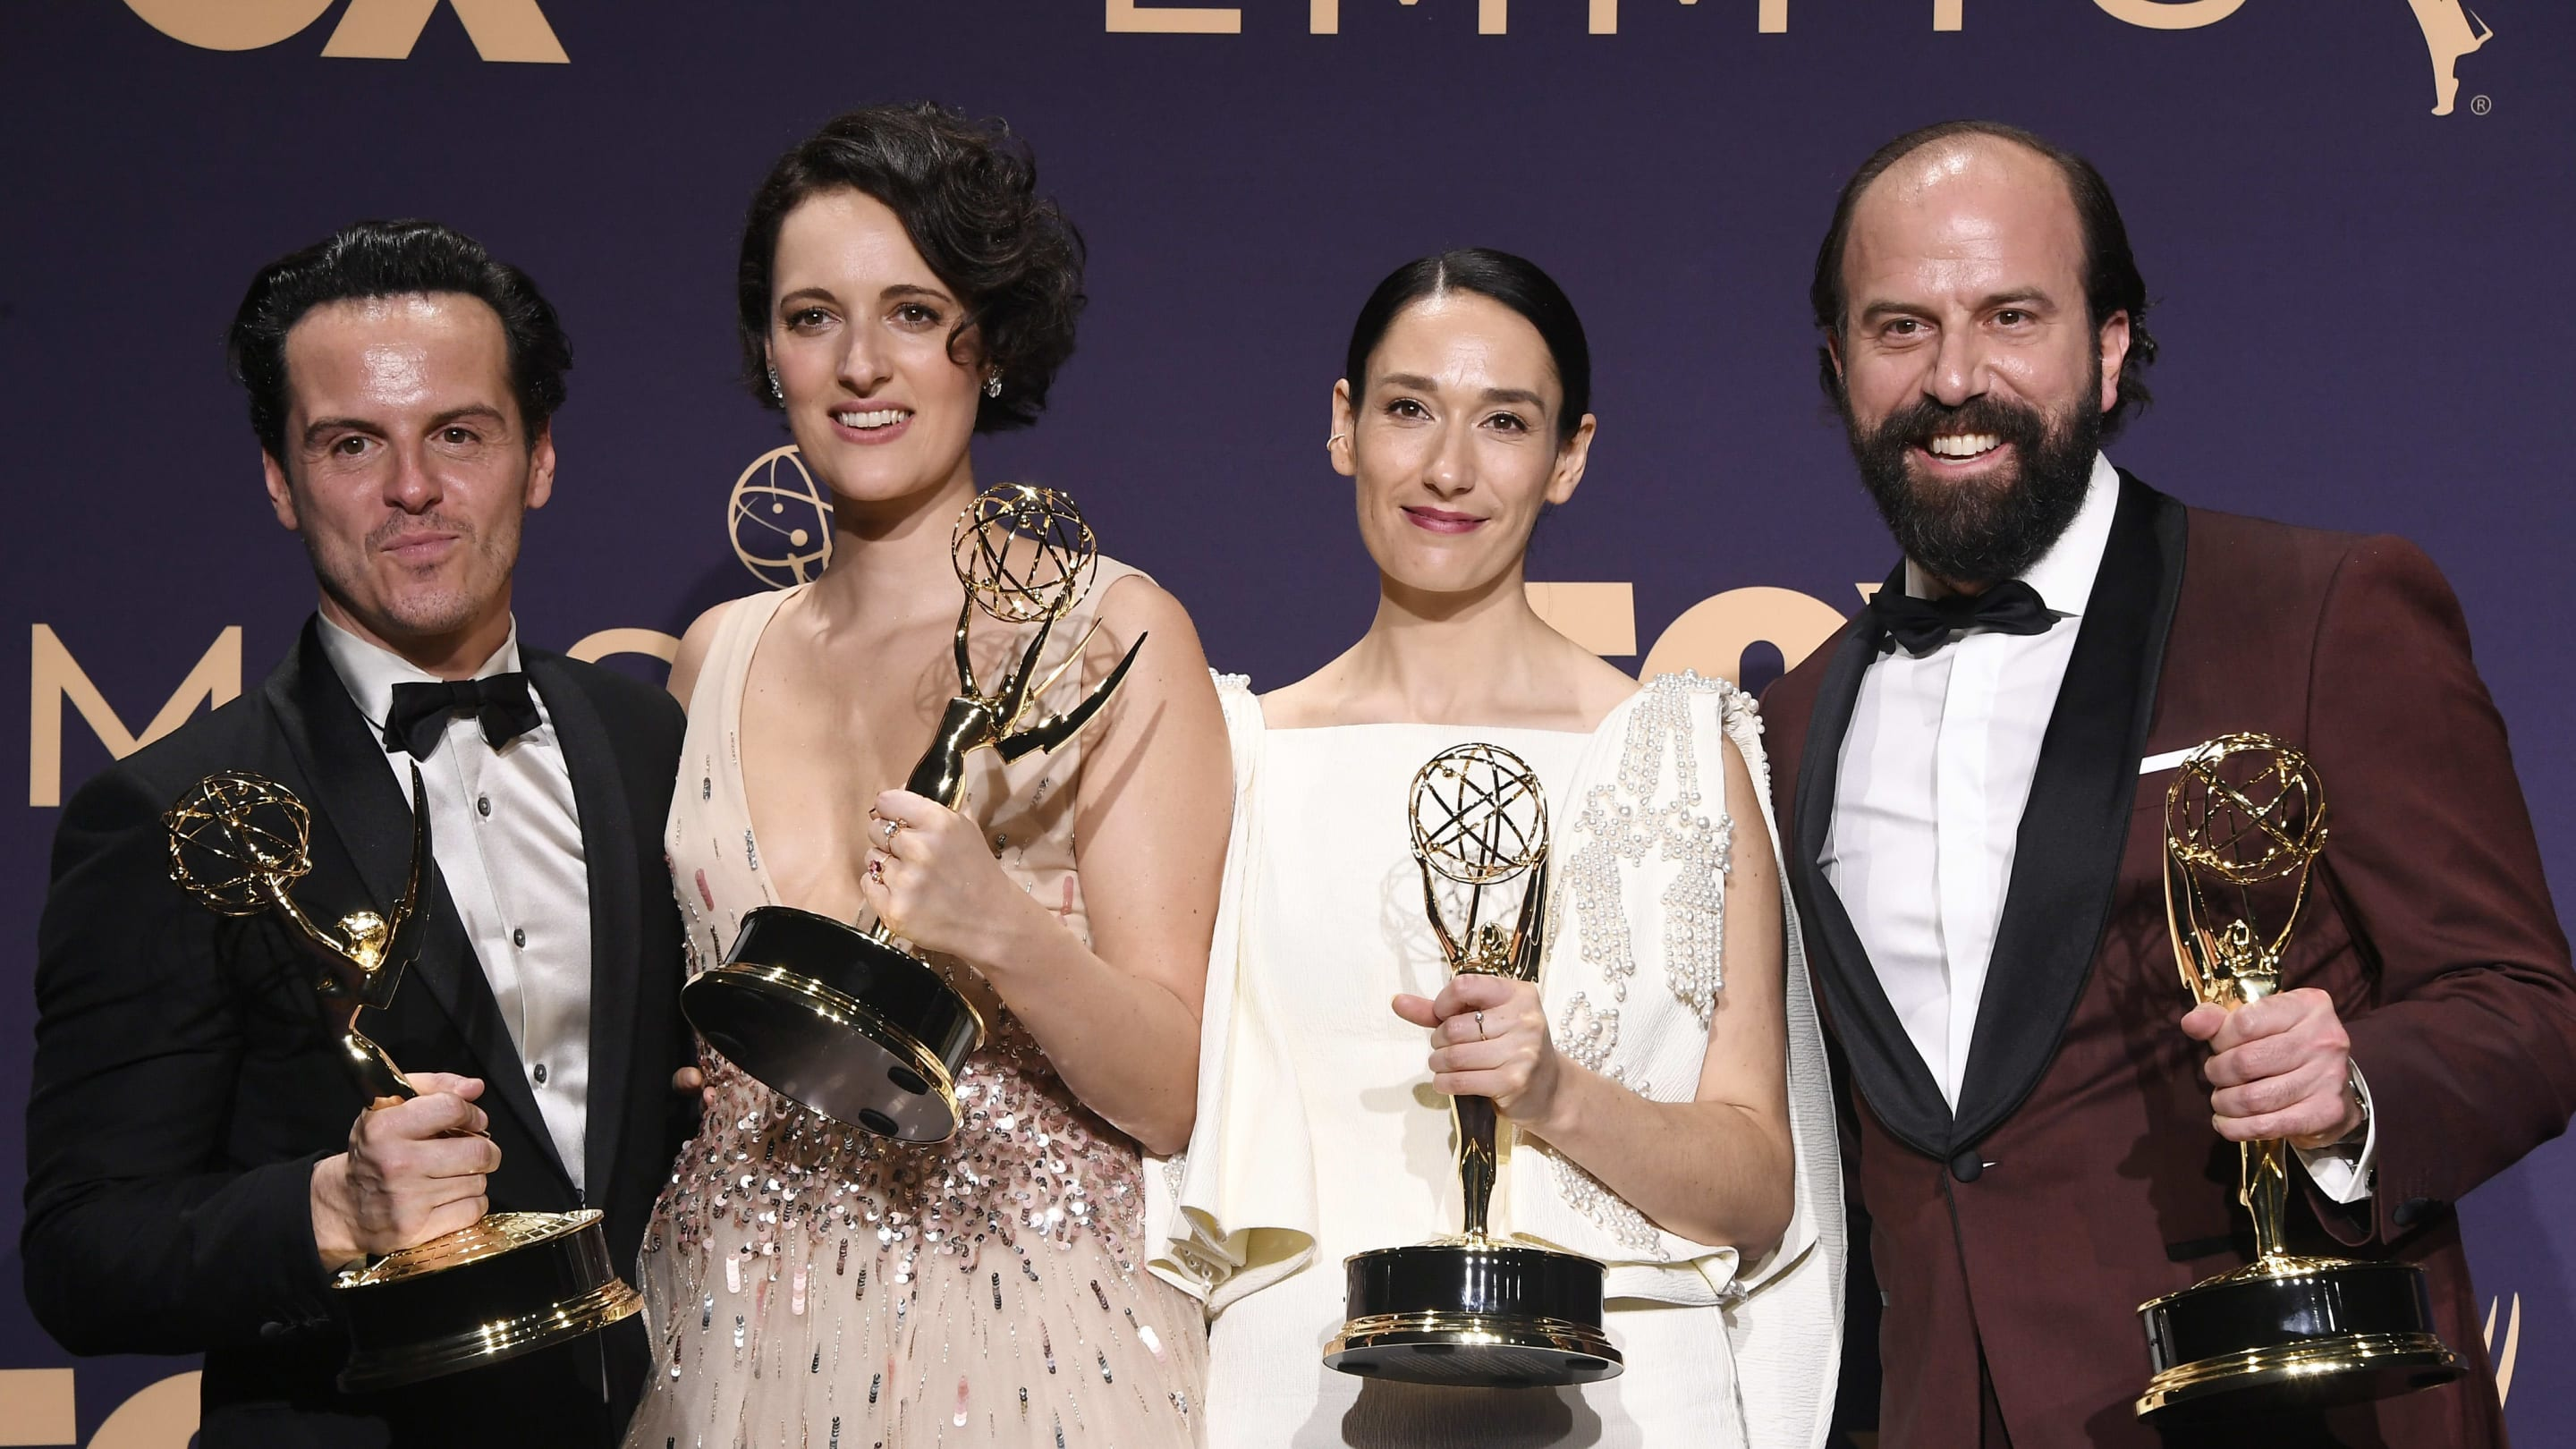 Emmy Awards 2020 Date, Host, and Everything You Need to Know